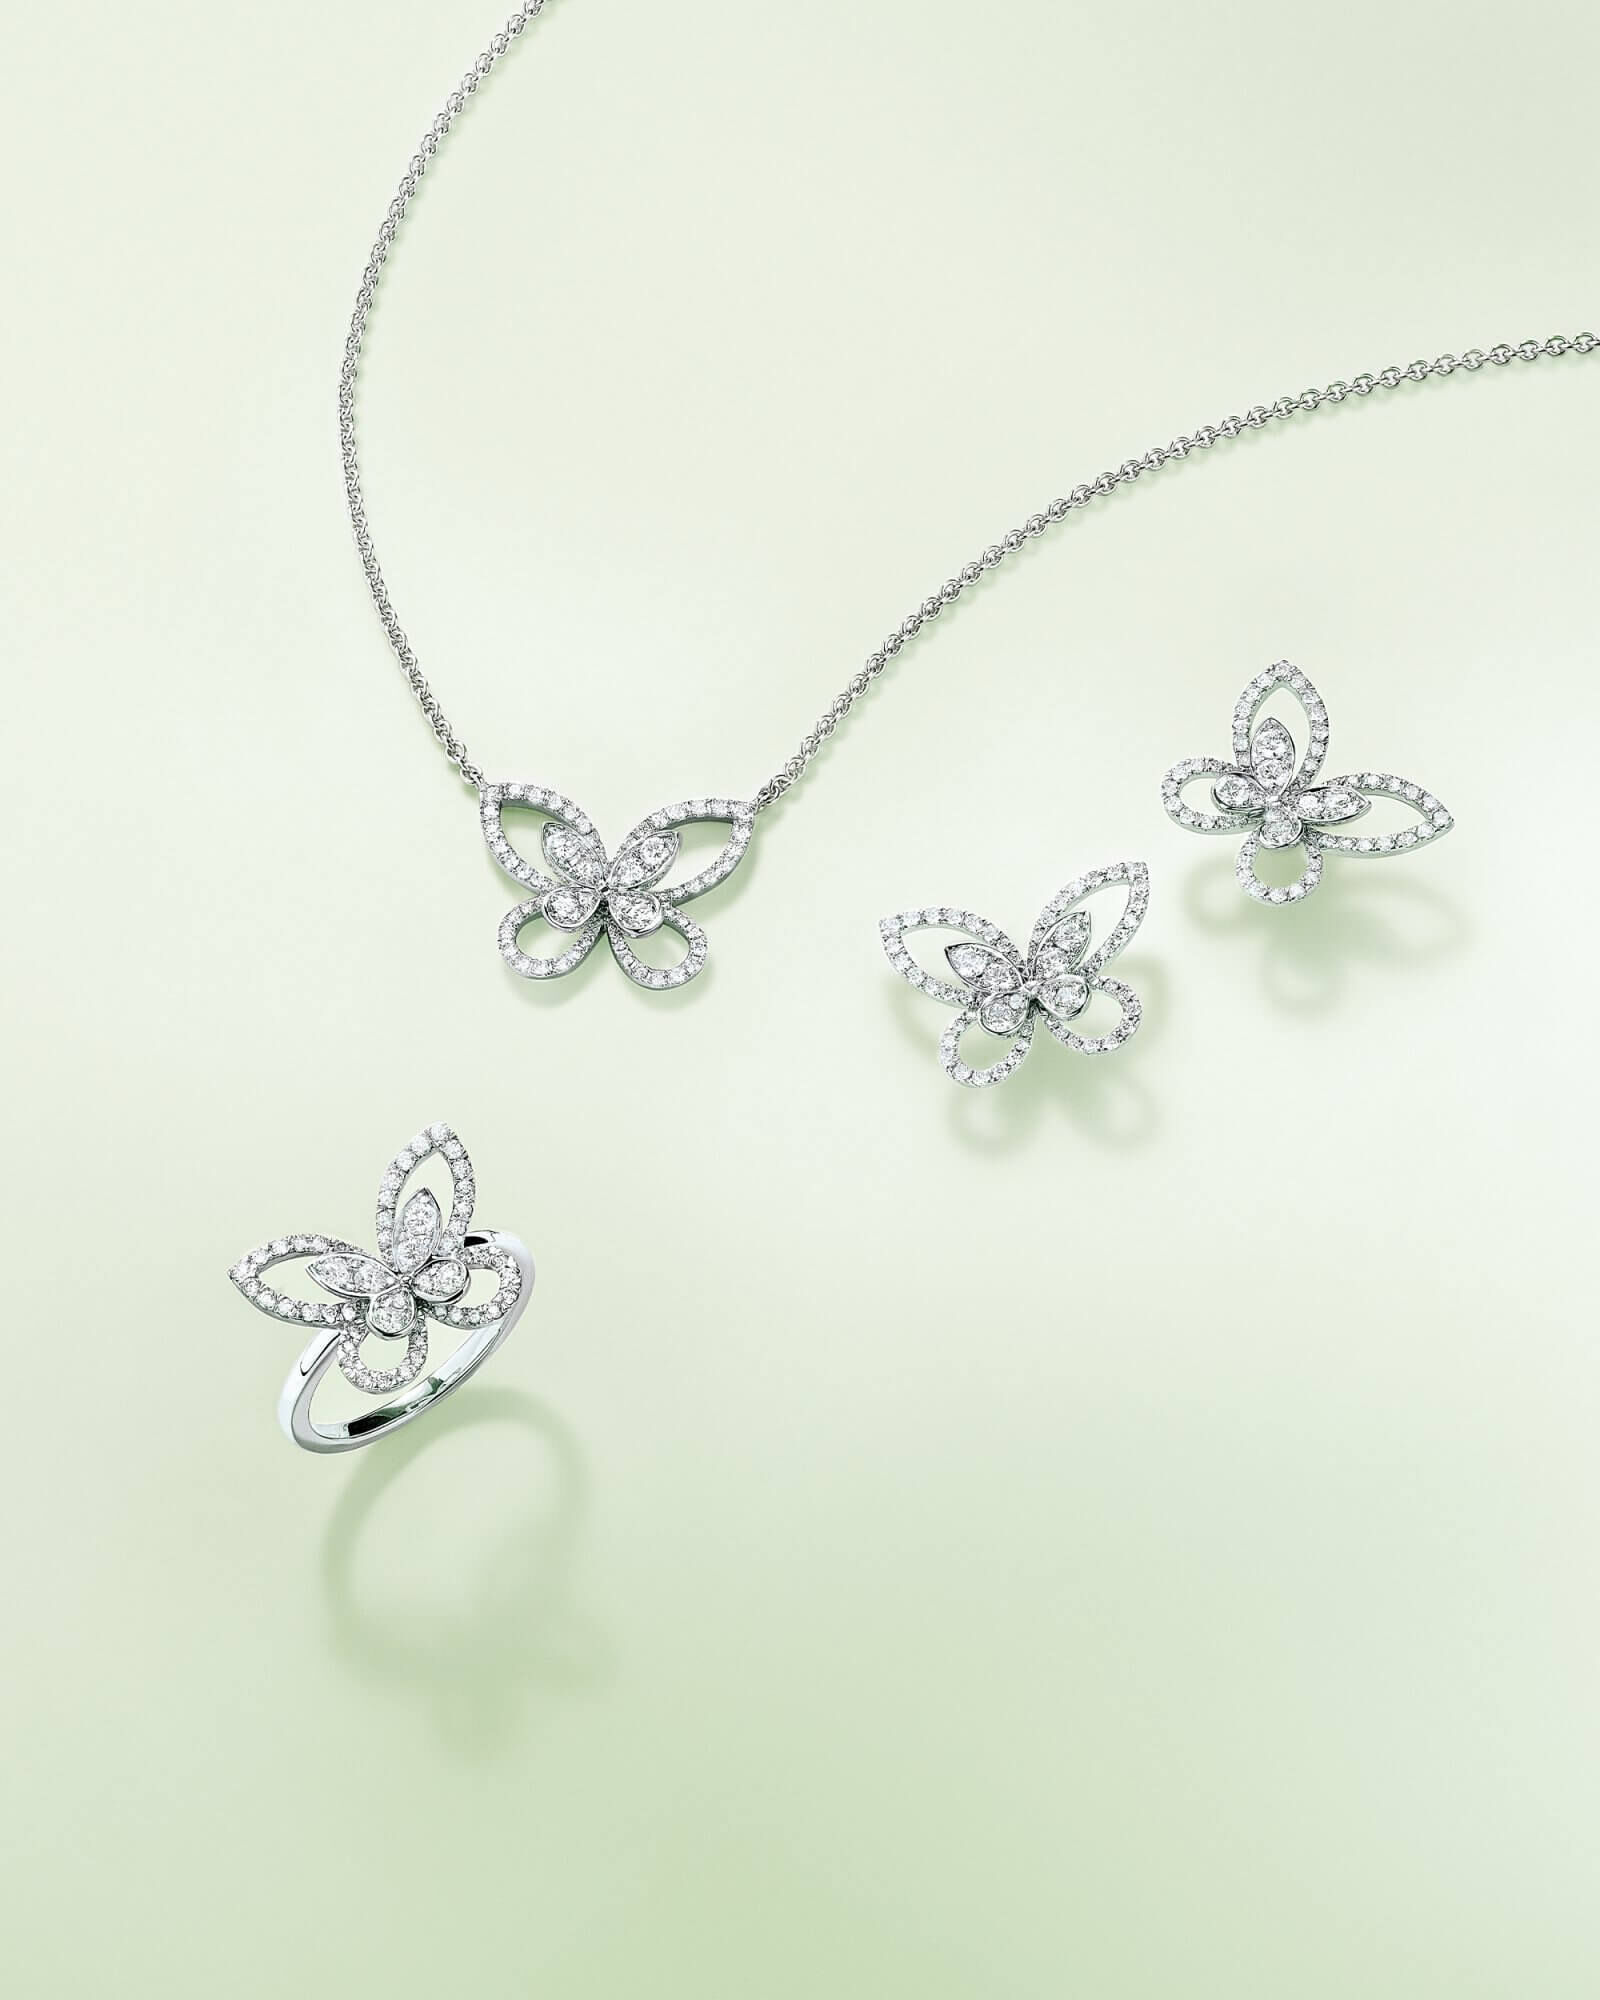 The Graff Butterfly Silhouette colleciton diamond ring, earrings and pendant